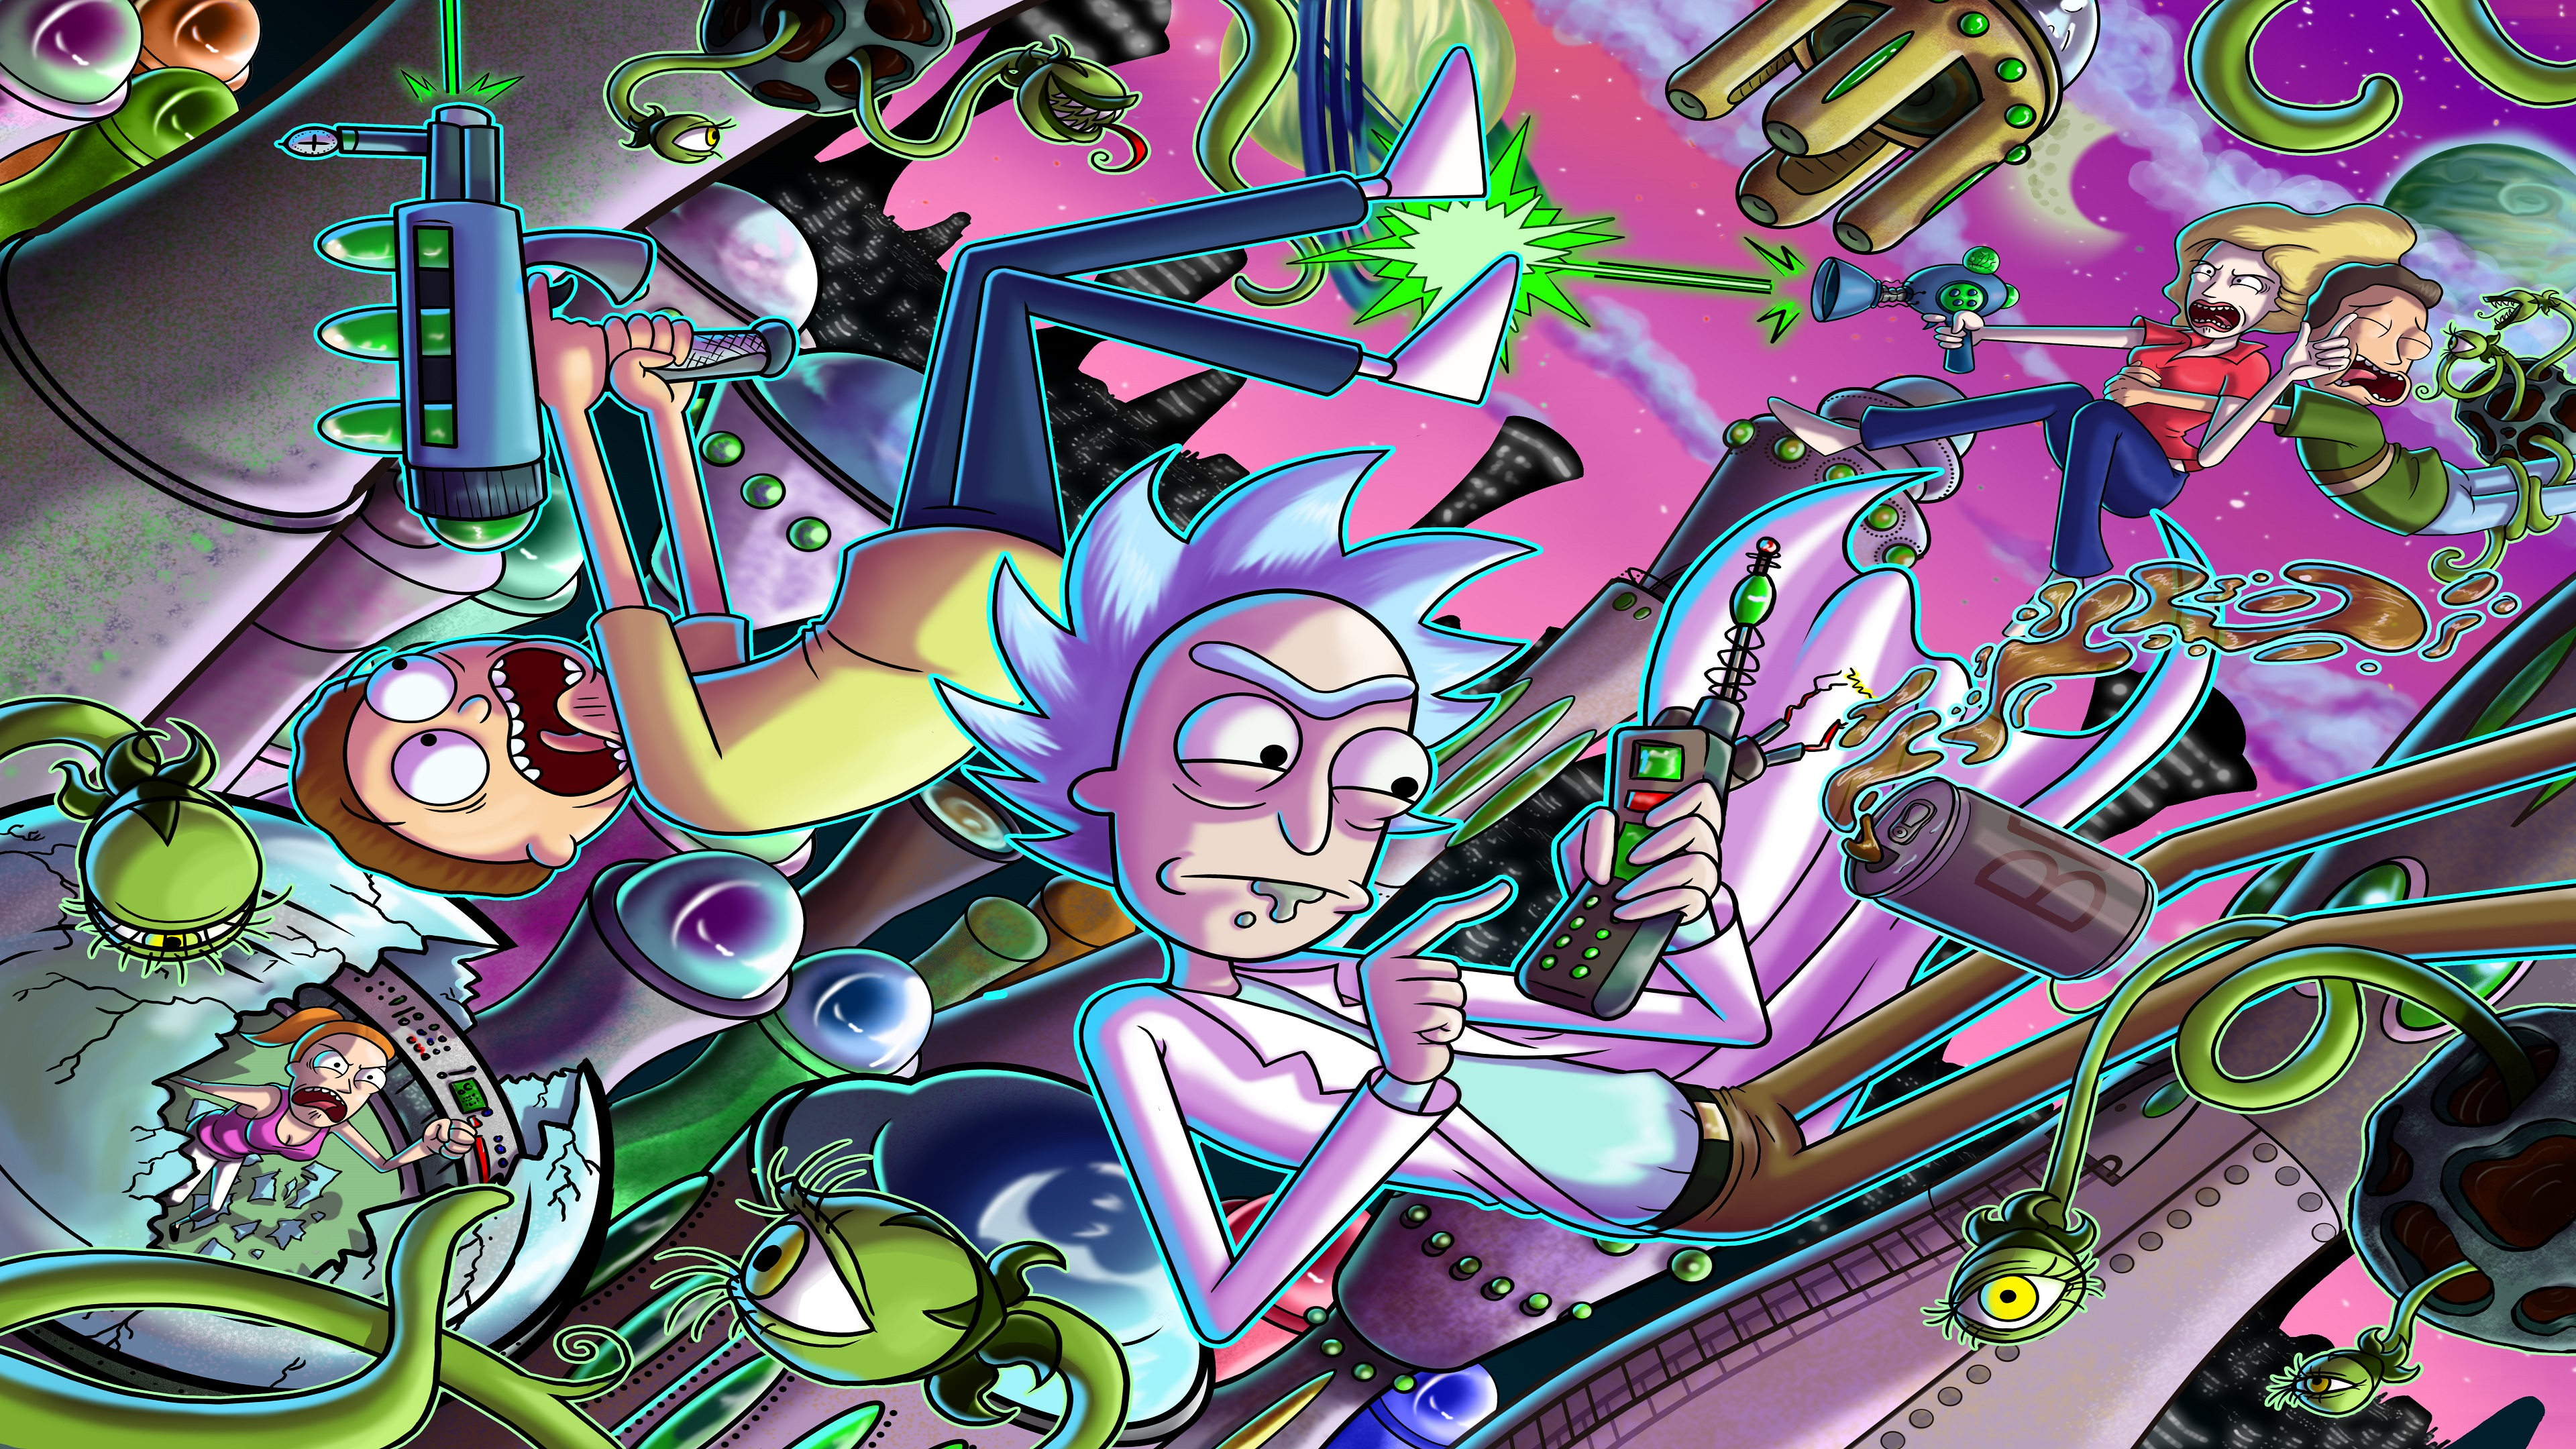 Psychedelic Girl Wallpaper Rick Amp Morty 2 Ps4wallpapers Com